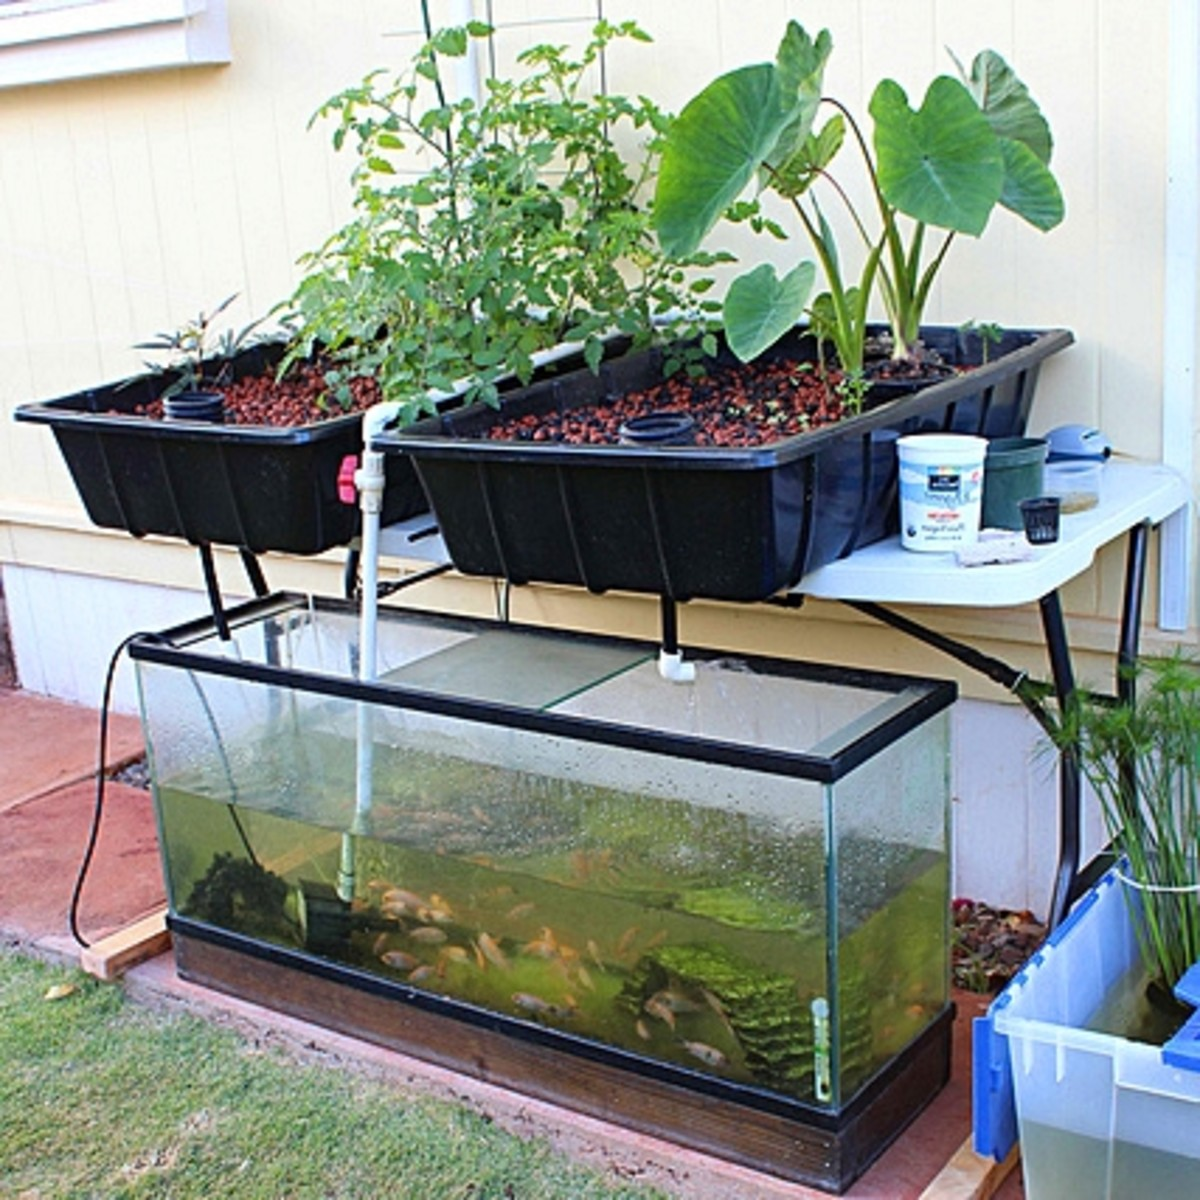 Aquaponics for a small family business